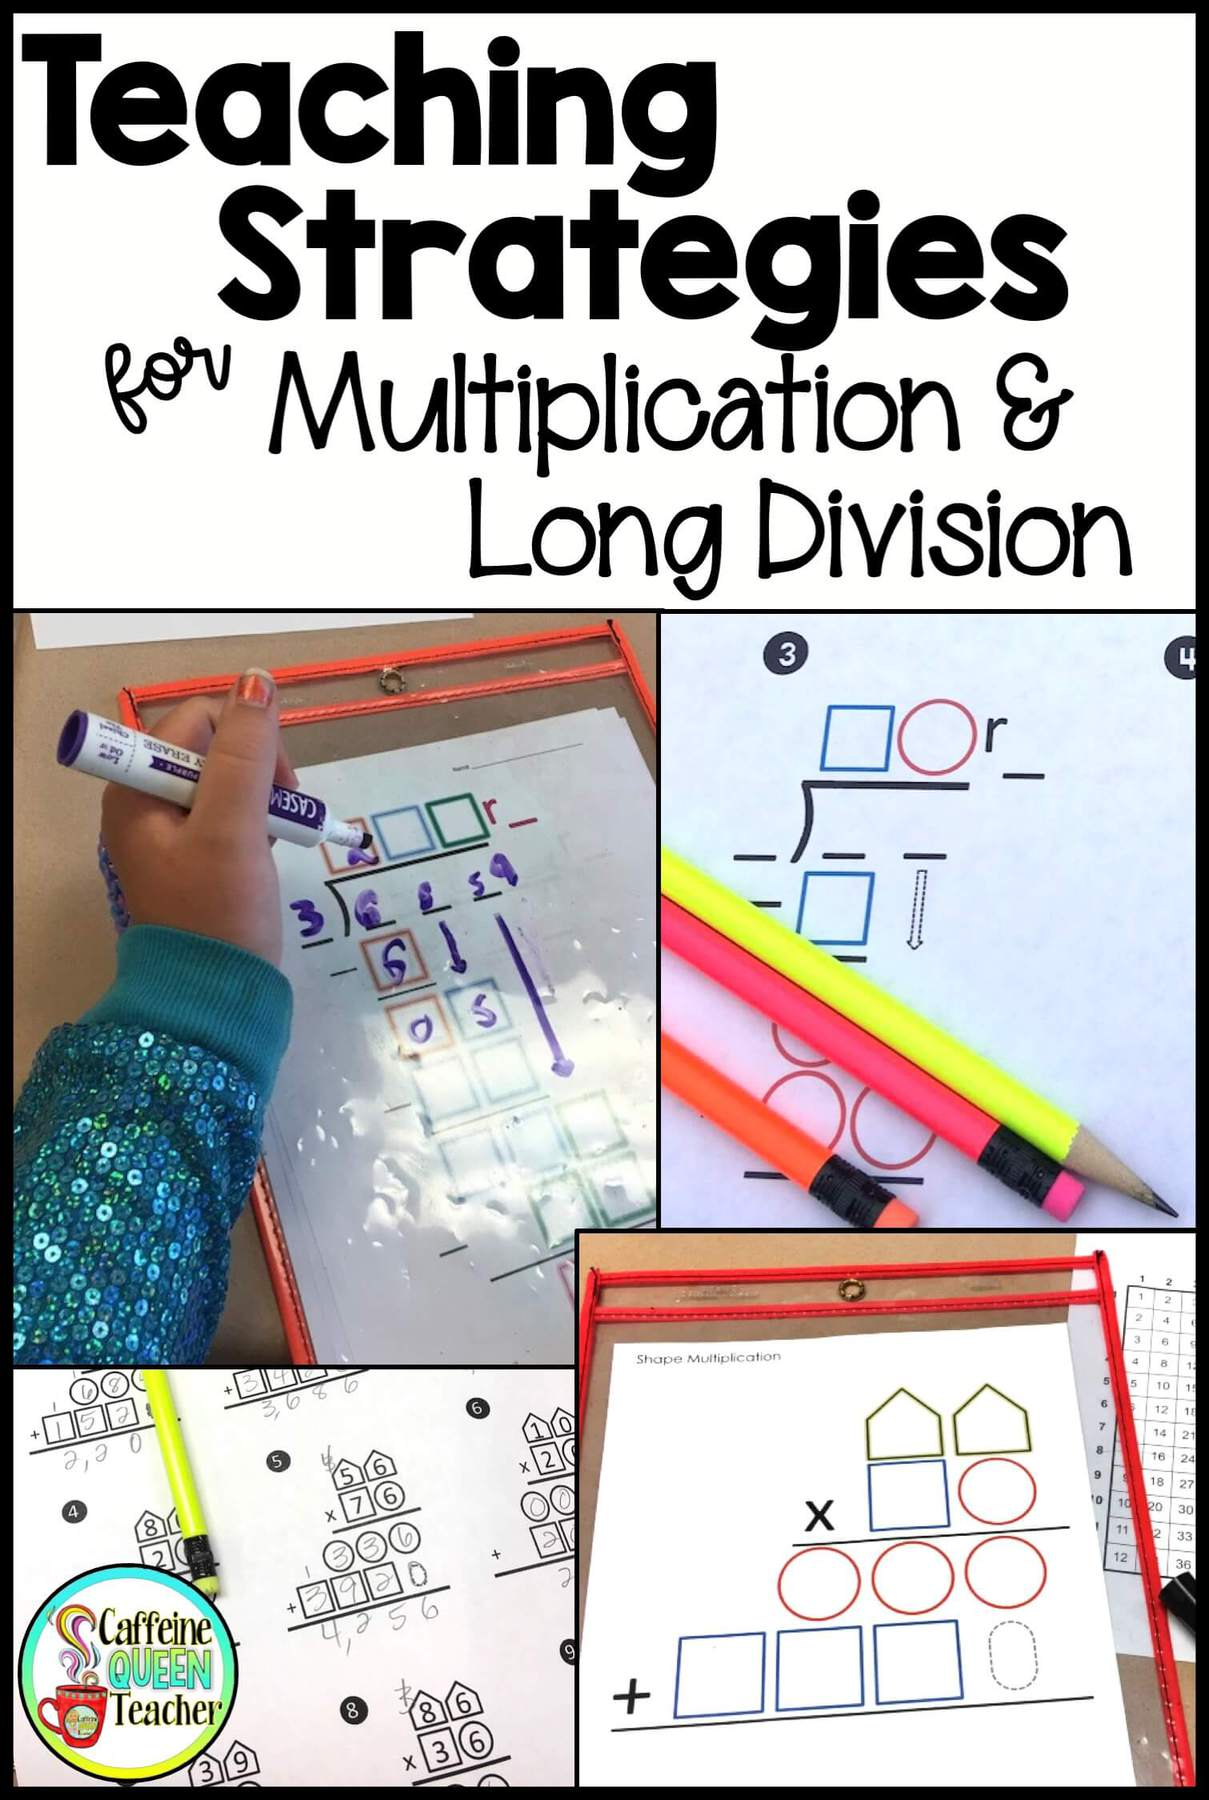 hight resolution of How to Teach Multi-Digit Multiplication and Long Division - Caffeine Queen  Teacher